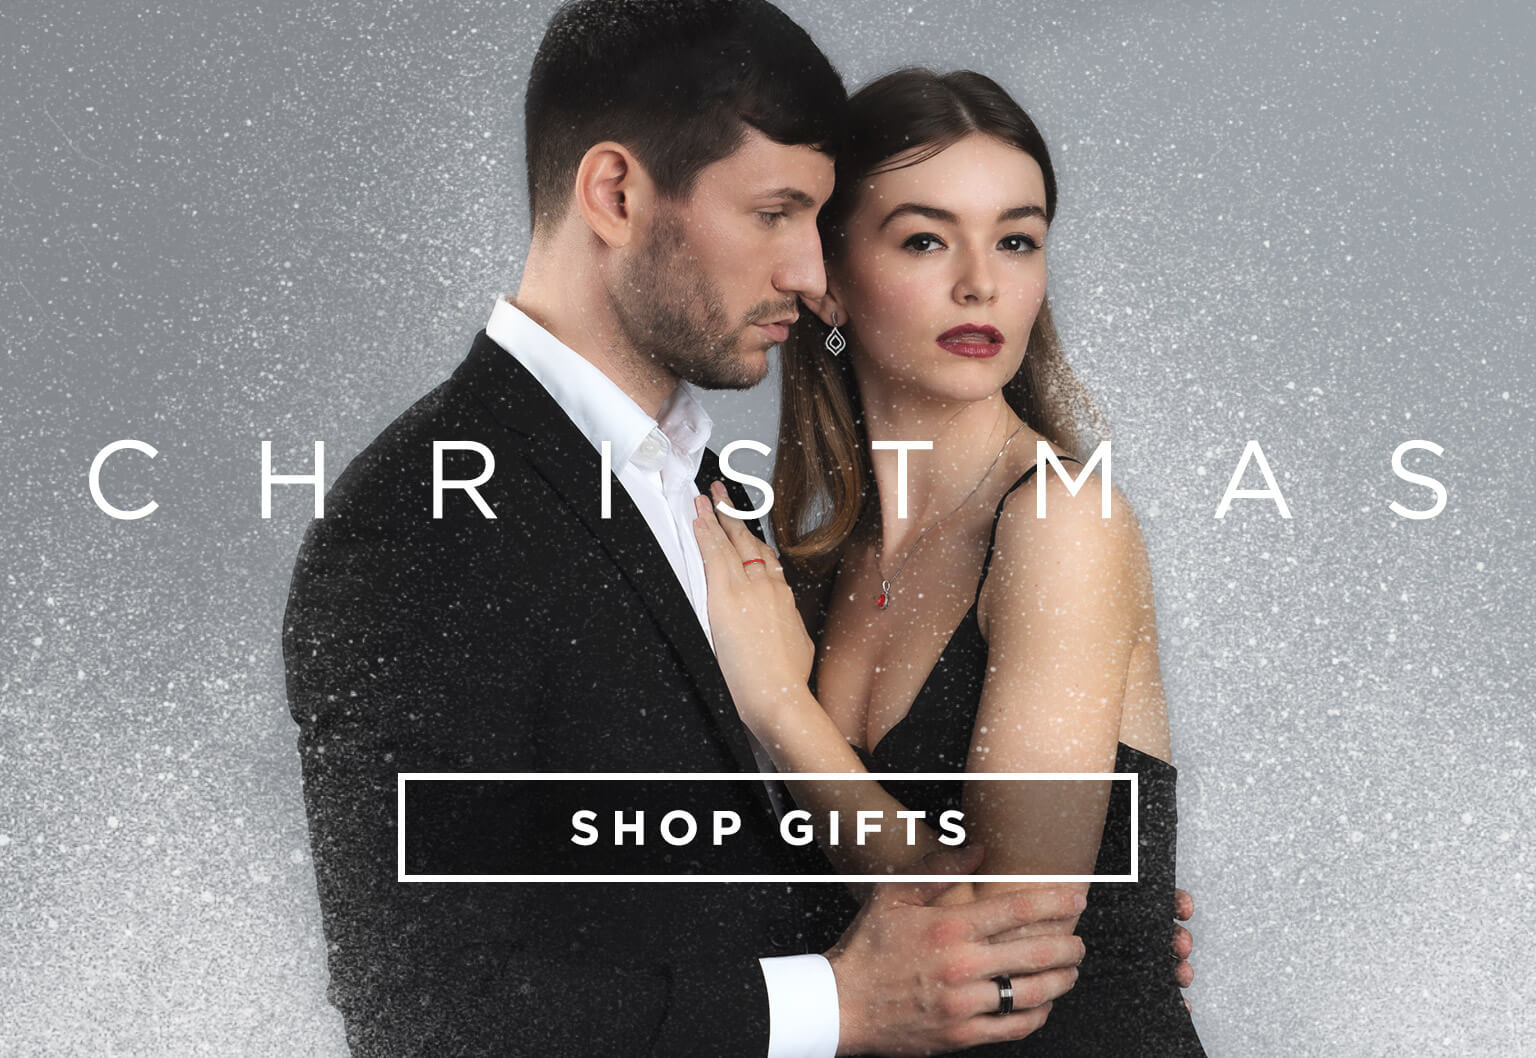 Christmas - Shop Gifts